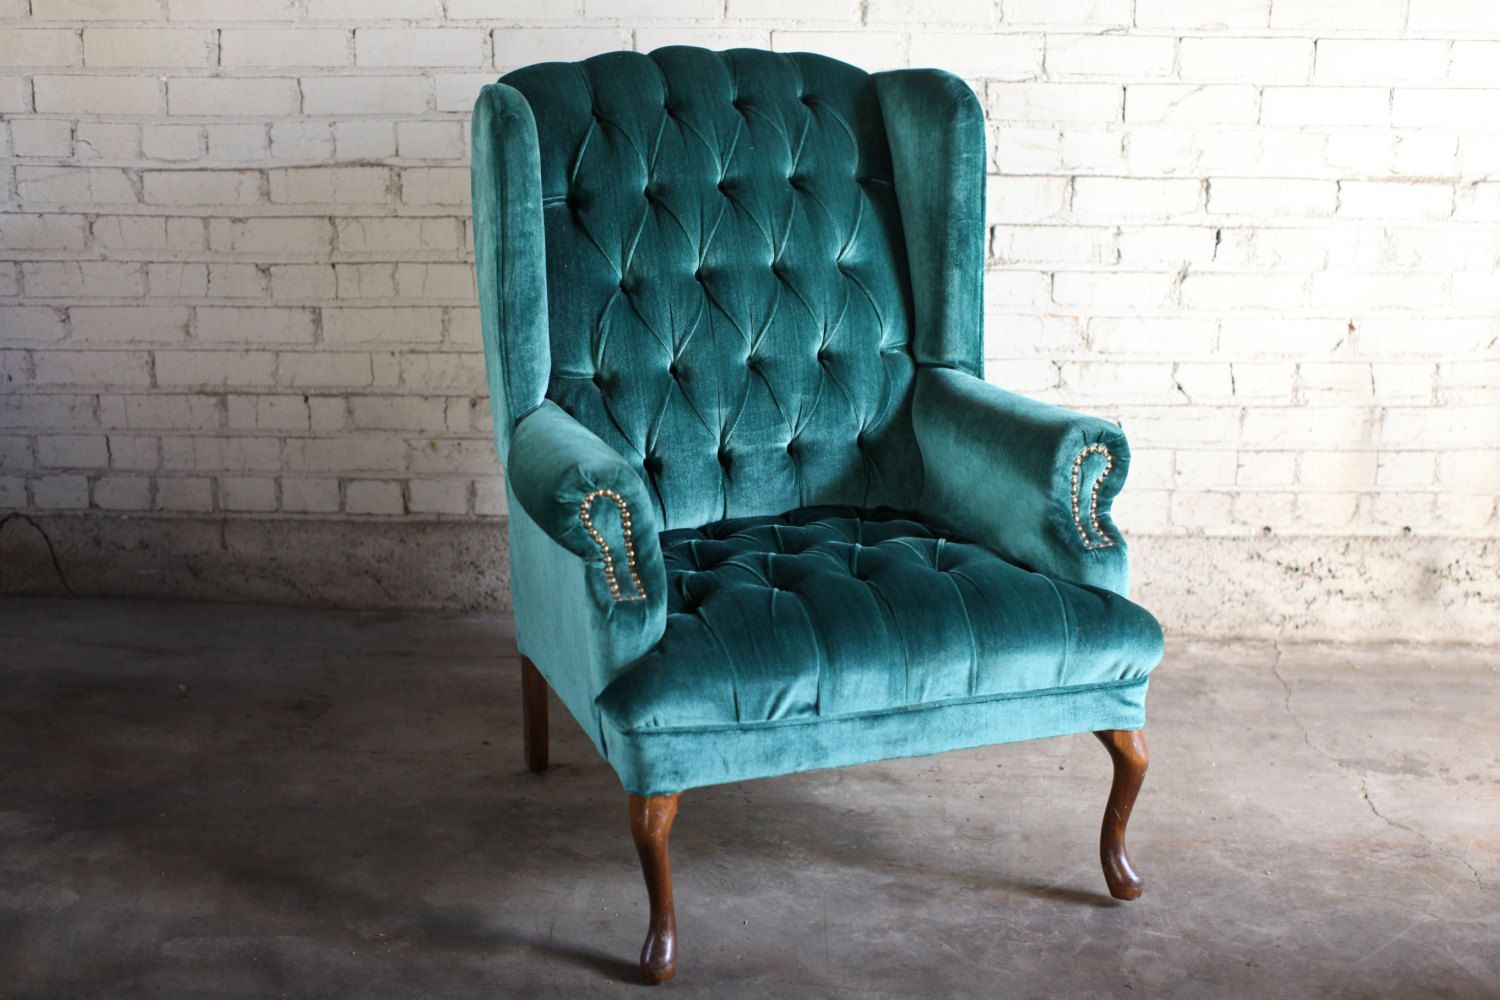 Teal Green Velvet Tufted Wingback Chair by